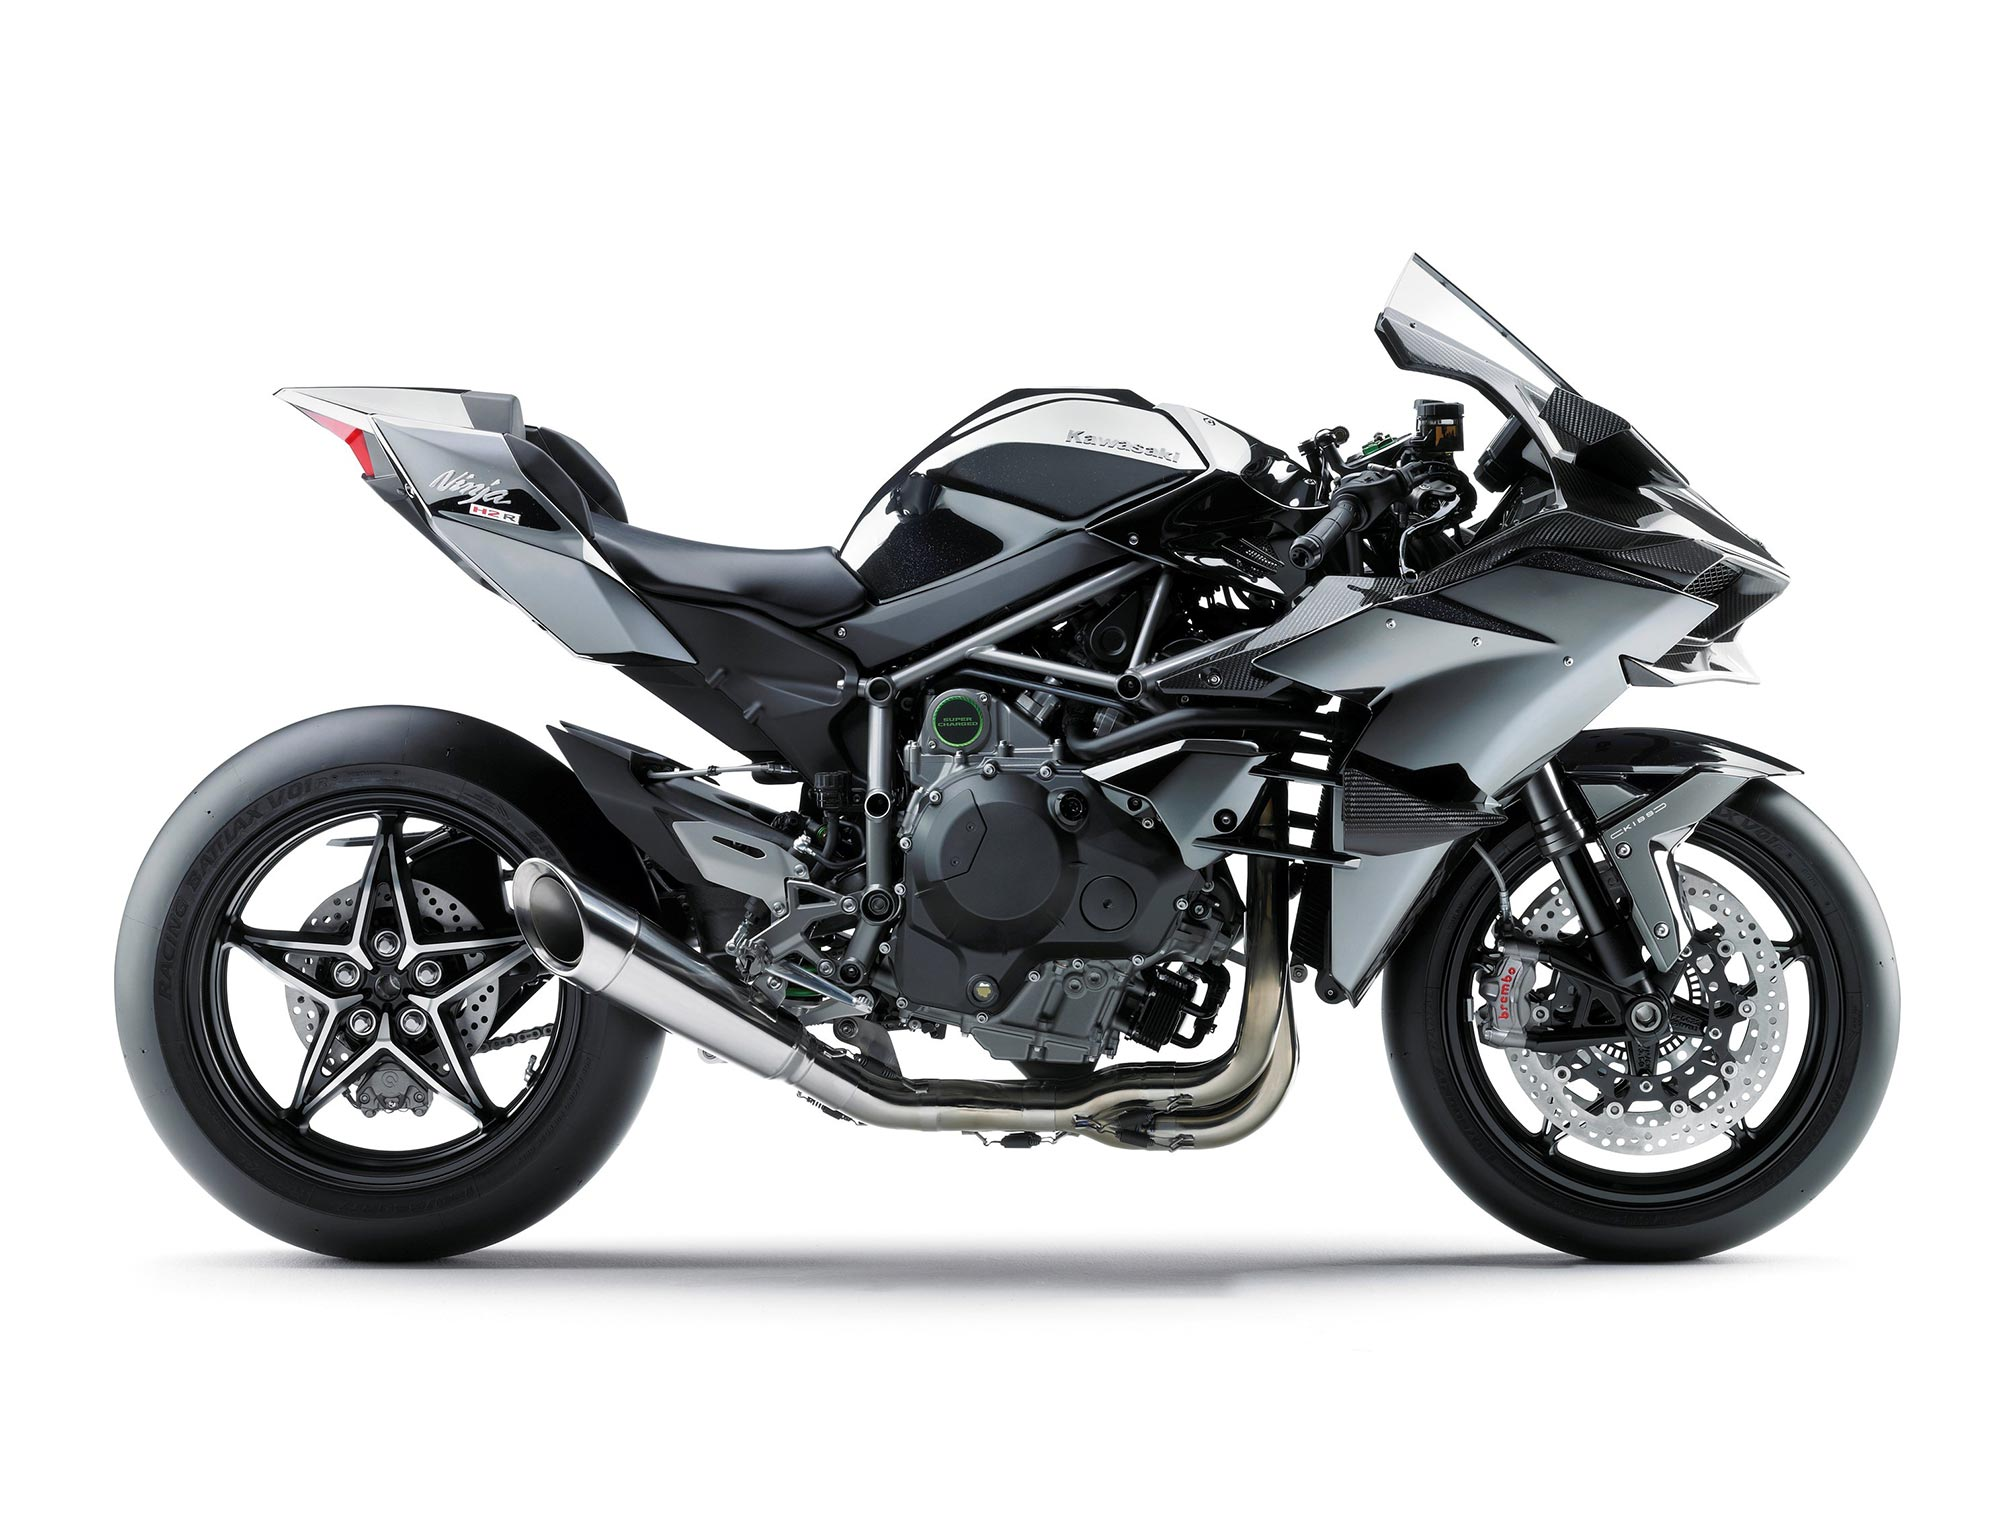 2016 kawasaki ninja h2r supercharged review. Black Bedroom Furniture Sets. Home Design Ideas